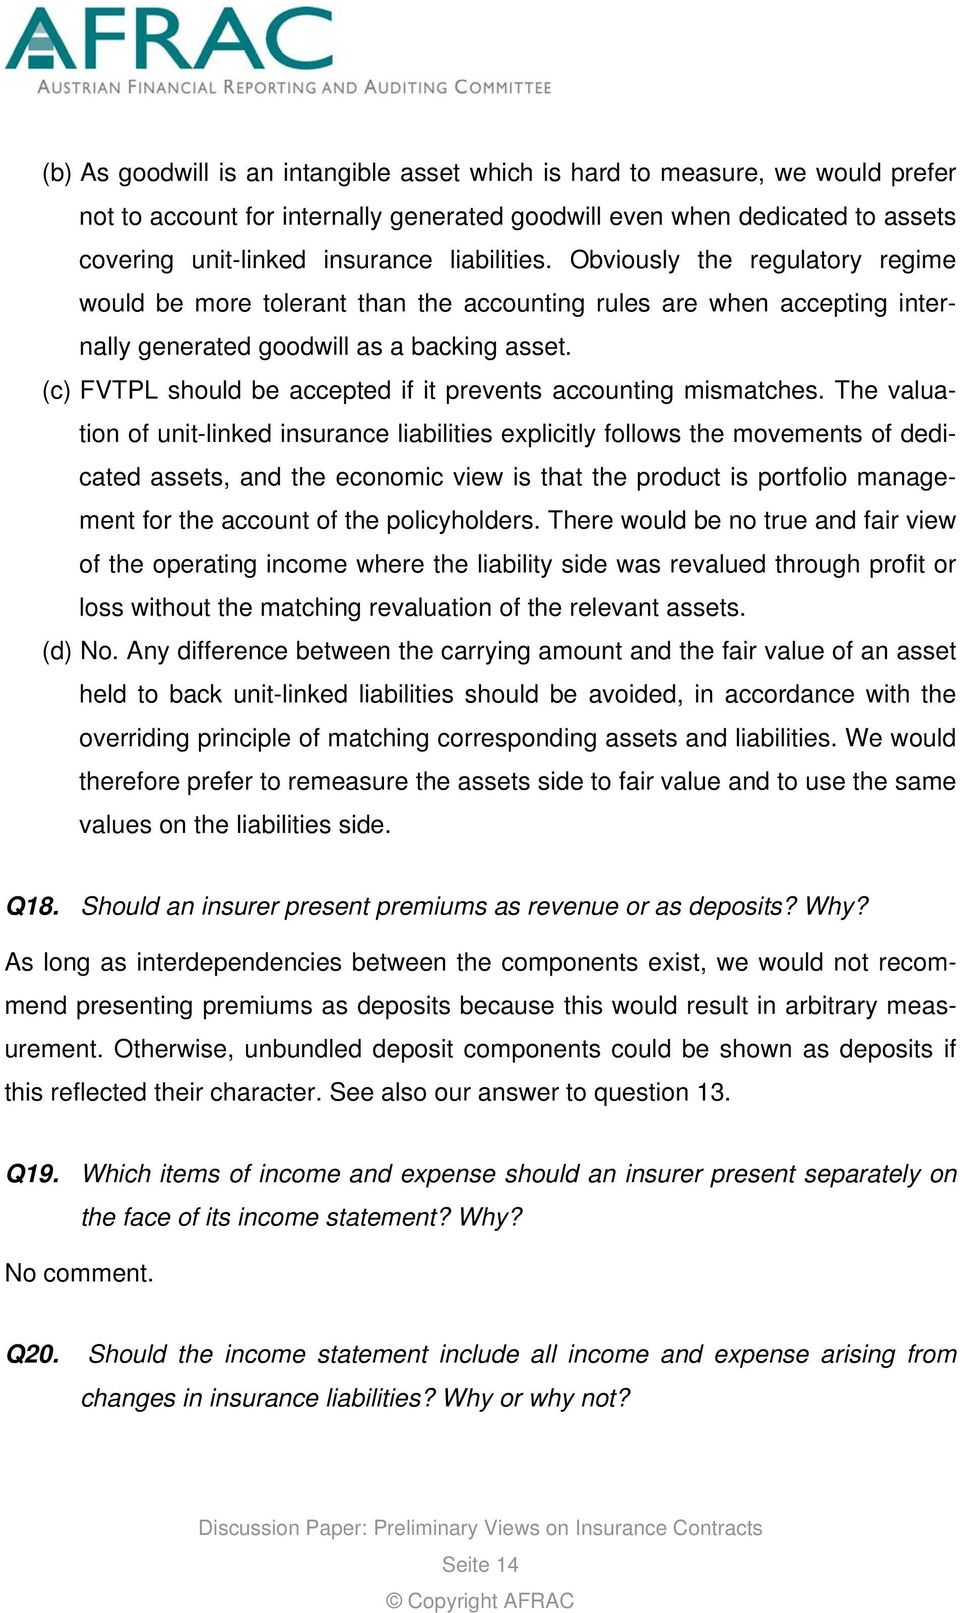 (c) FVTPL should be accepted if it prevents accounting mismatches.